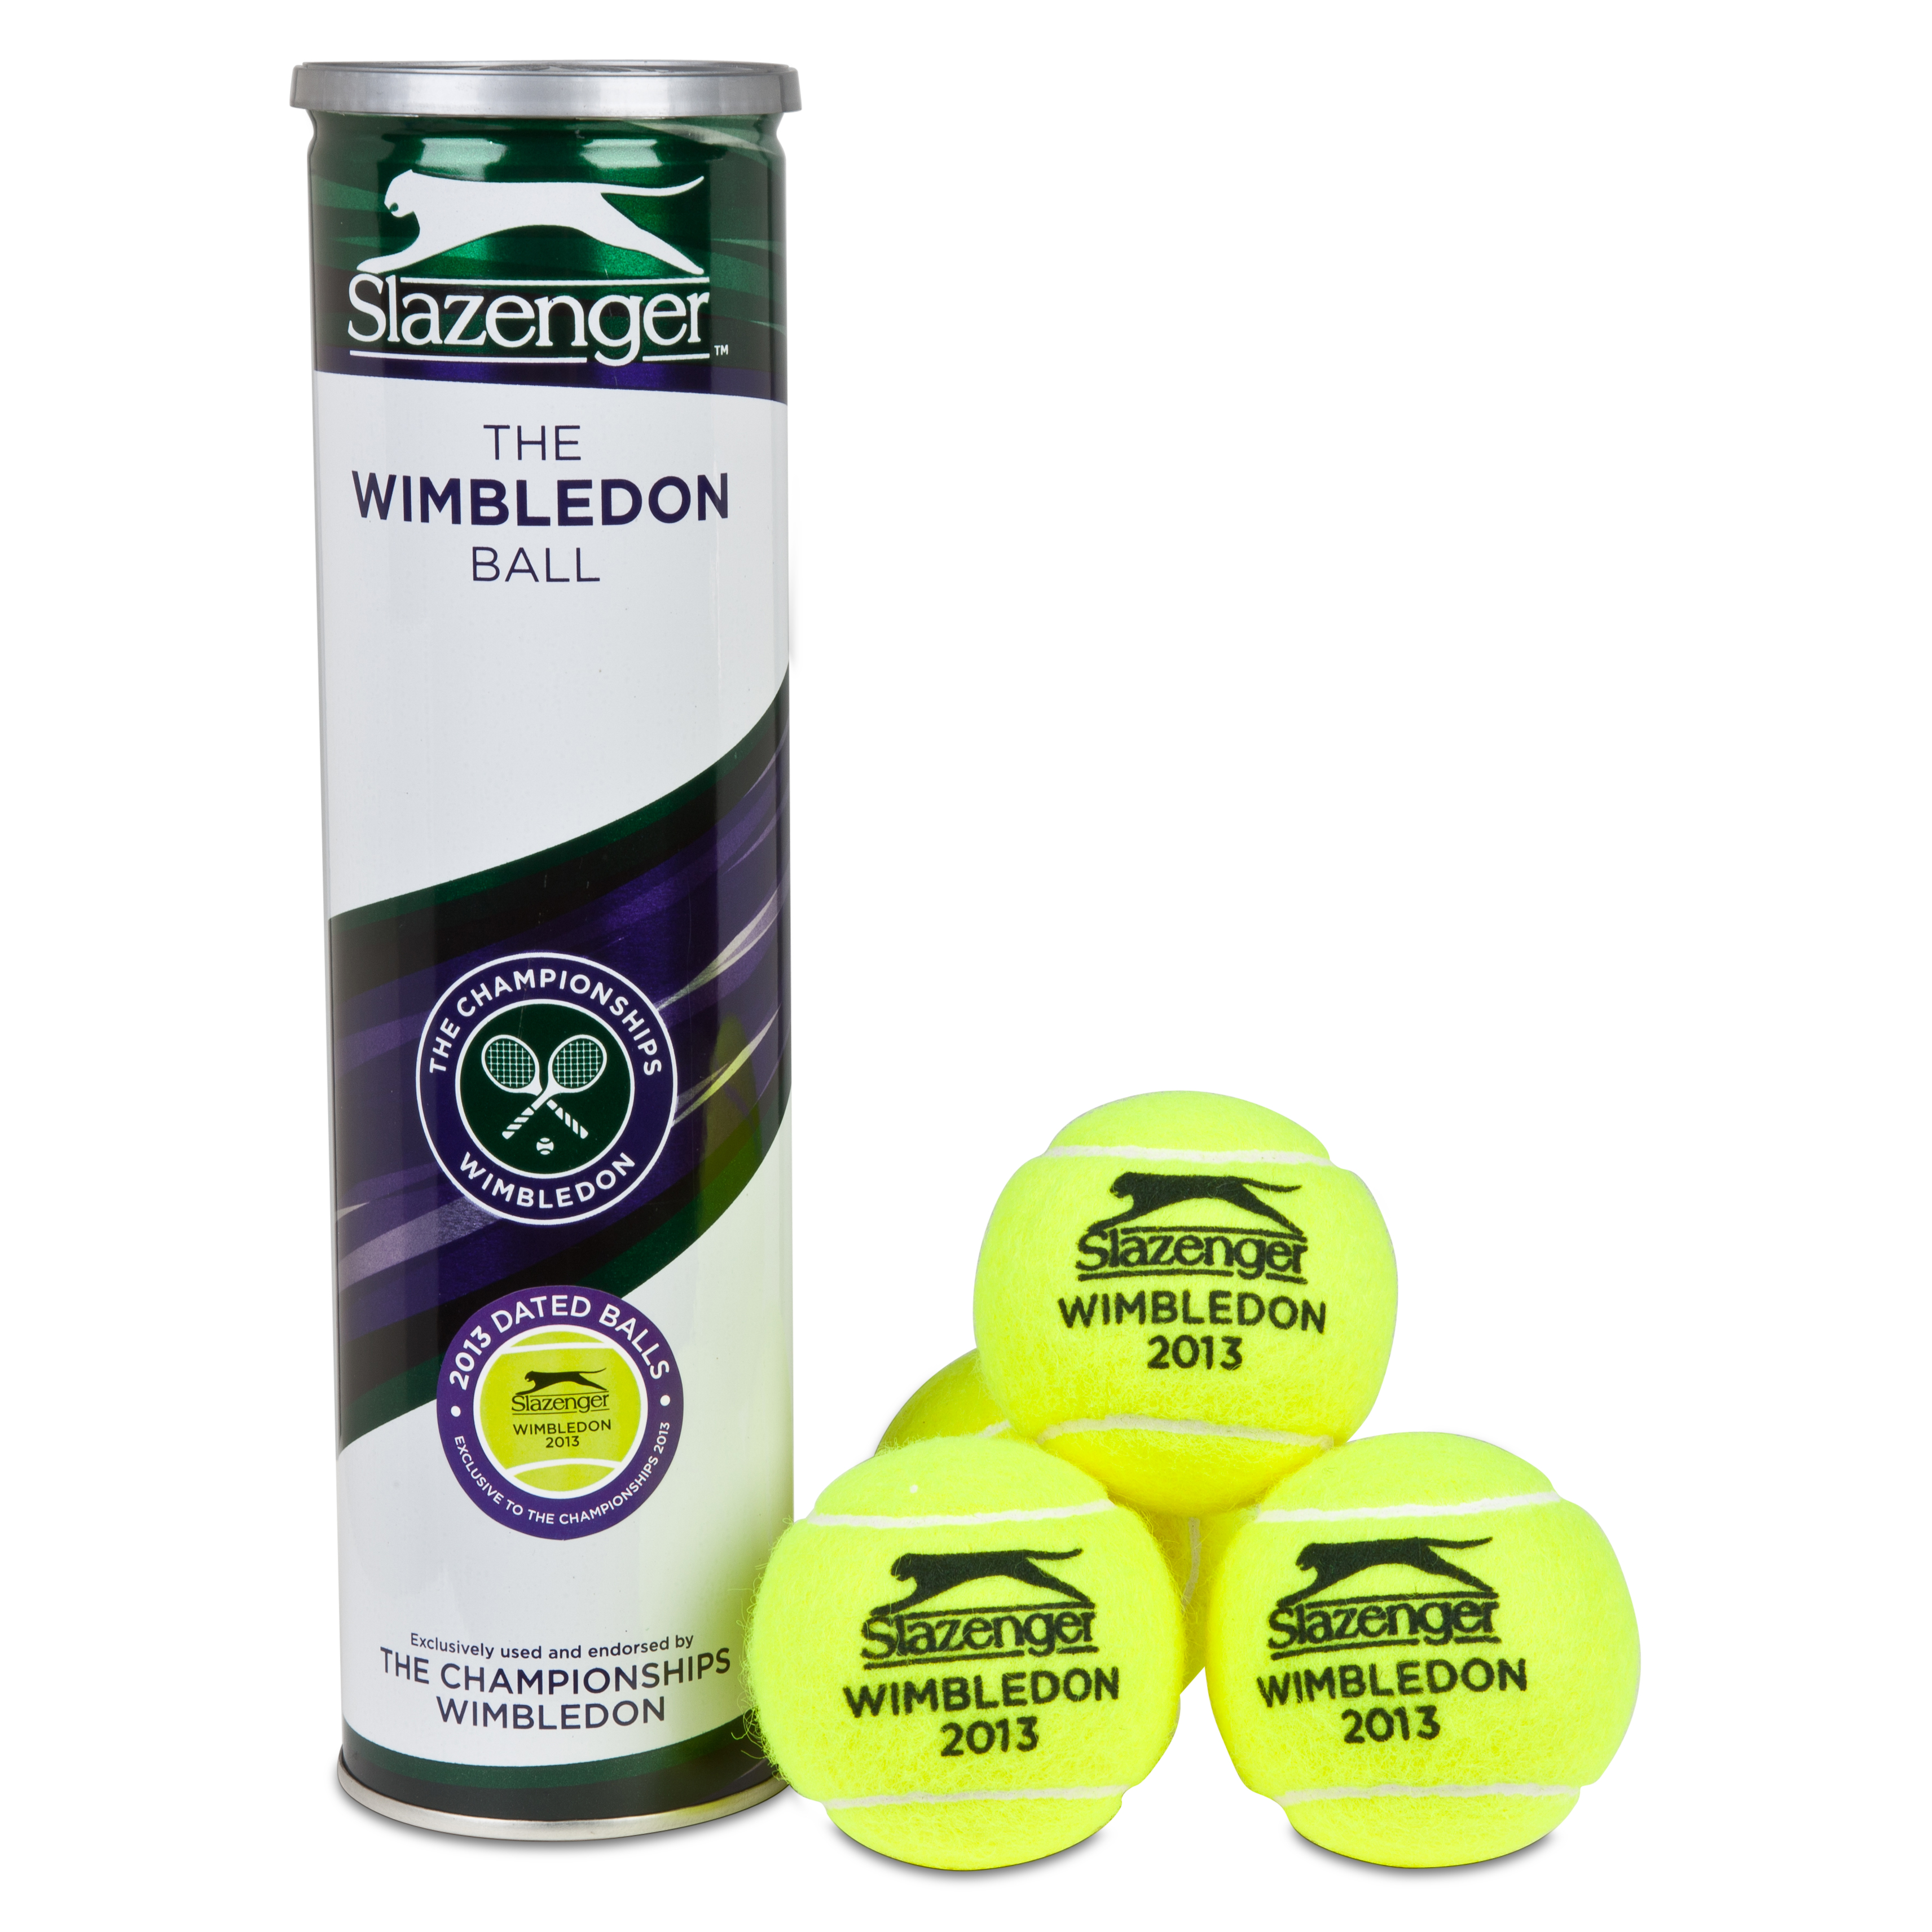 Wimbledon 2013 Slazenger Tennis Ball - 4 Pack